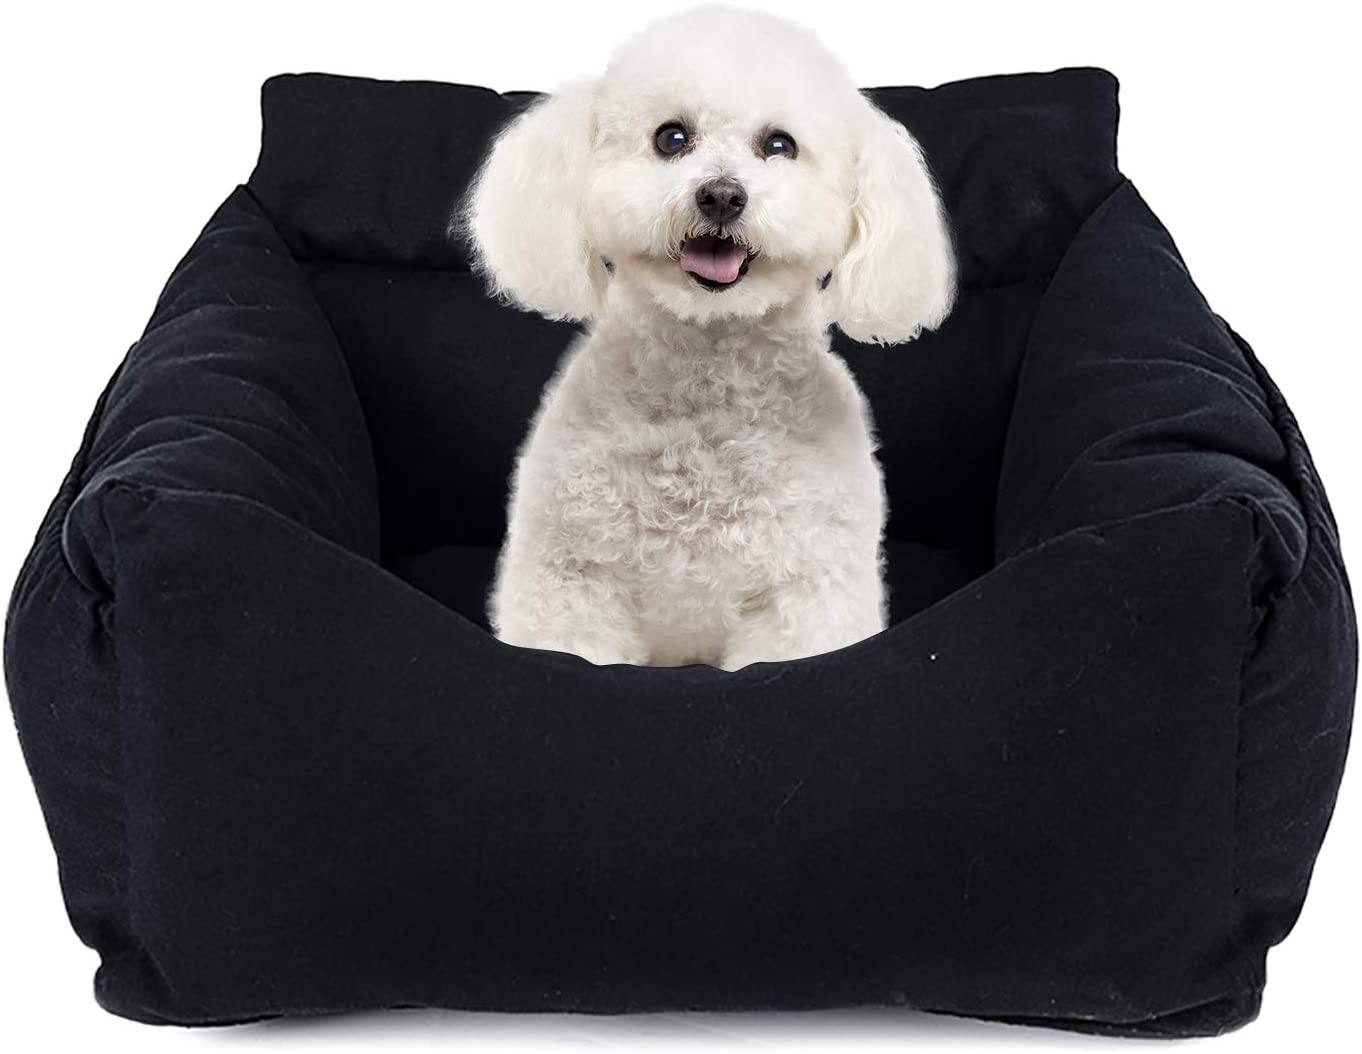 NIBESSER Dog Car Seats Max 56% OFF for Bed Booster Max 59% OFF Small Dogs